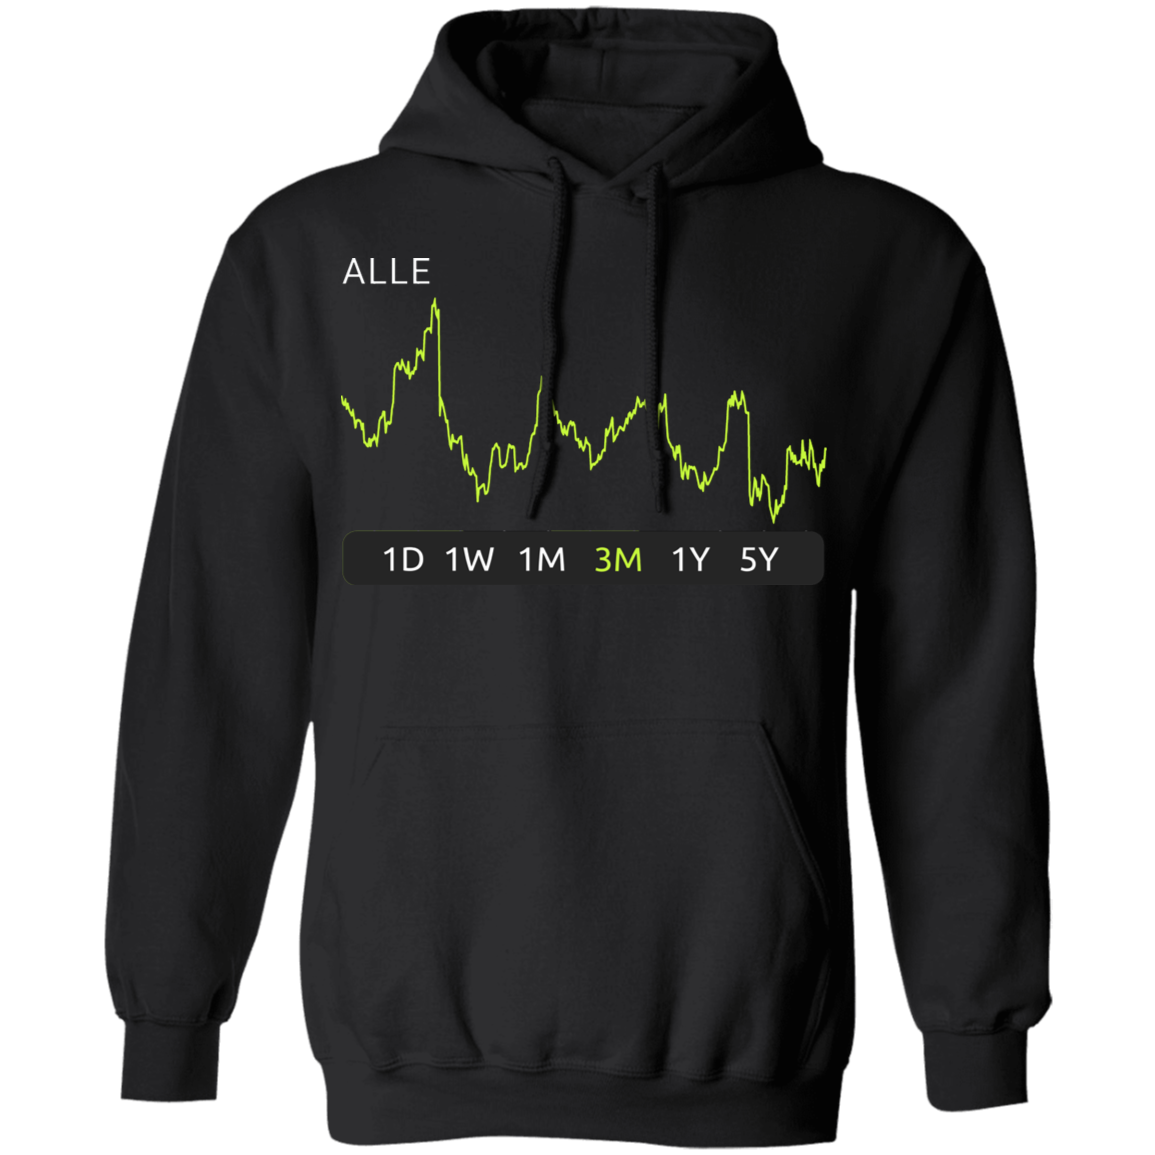 ALLE Stock 3m Pullover Hoodie